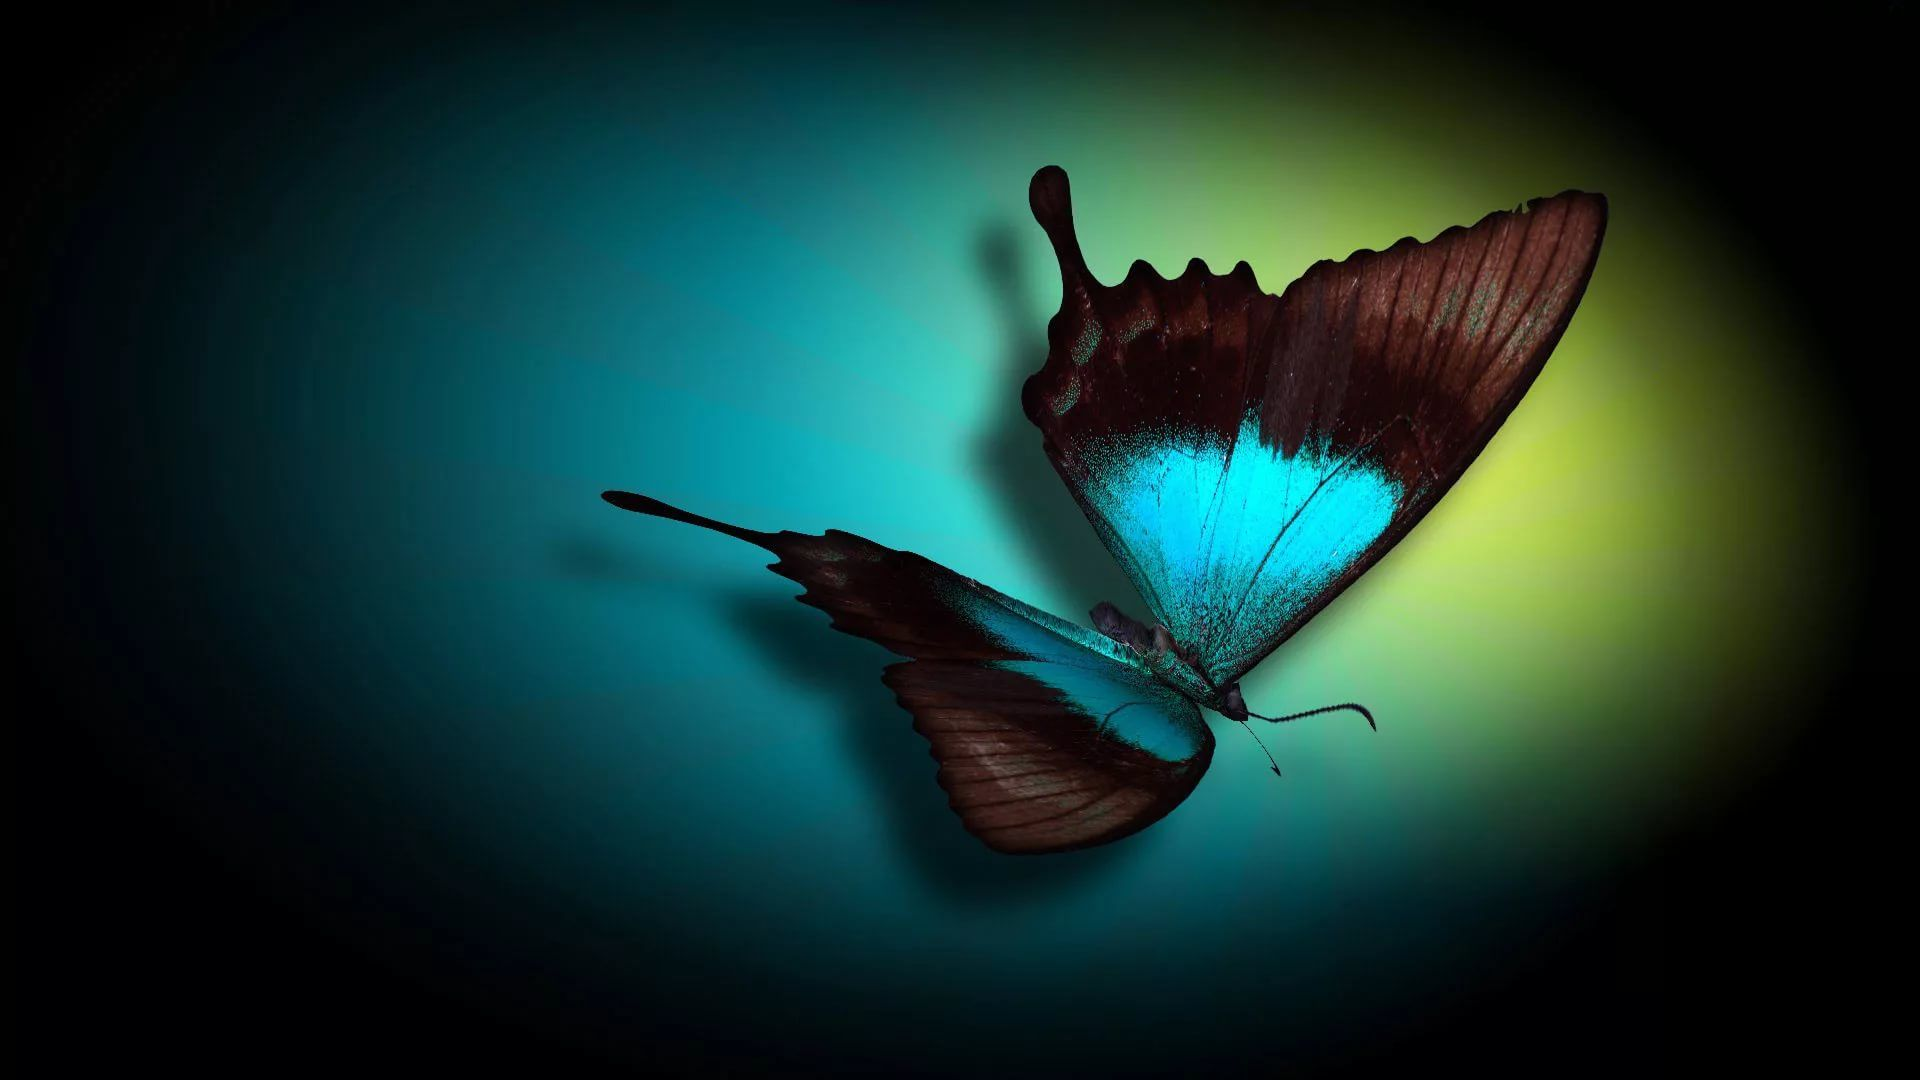 Nice Butterfly Image